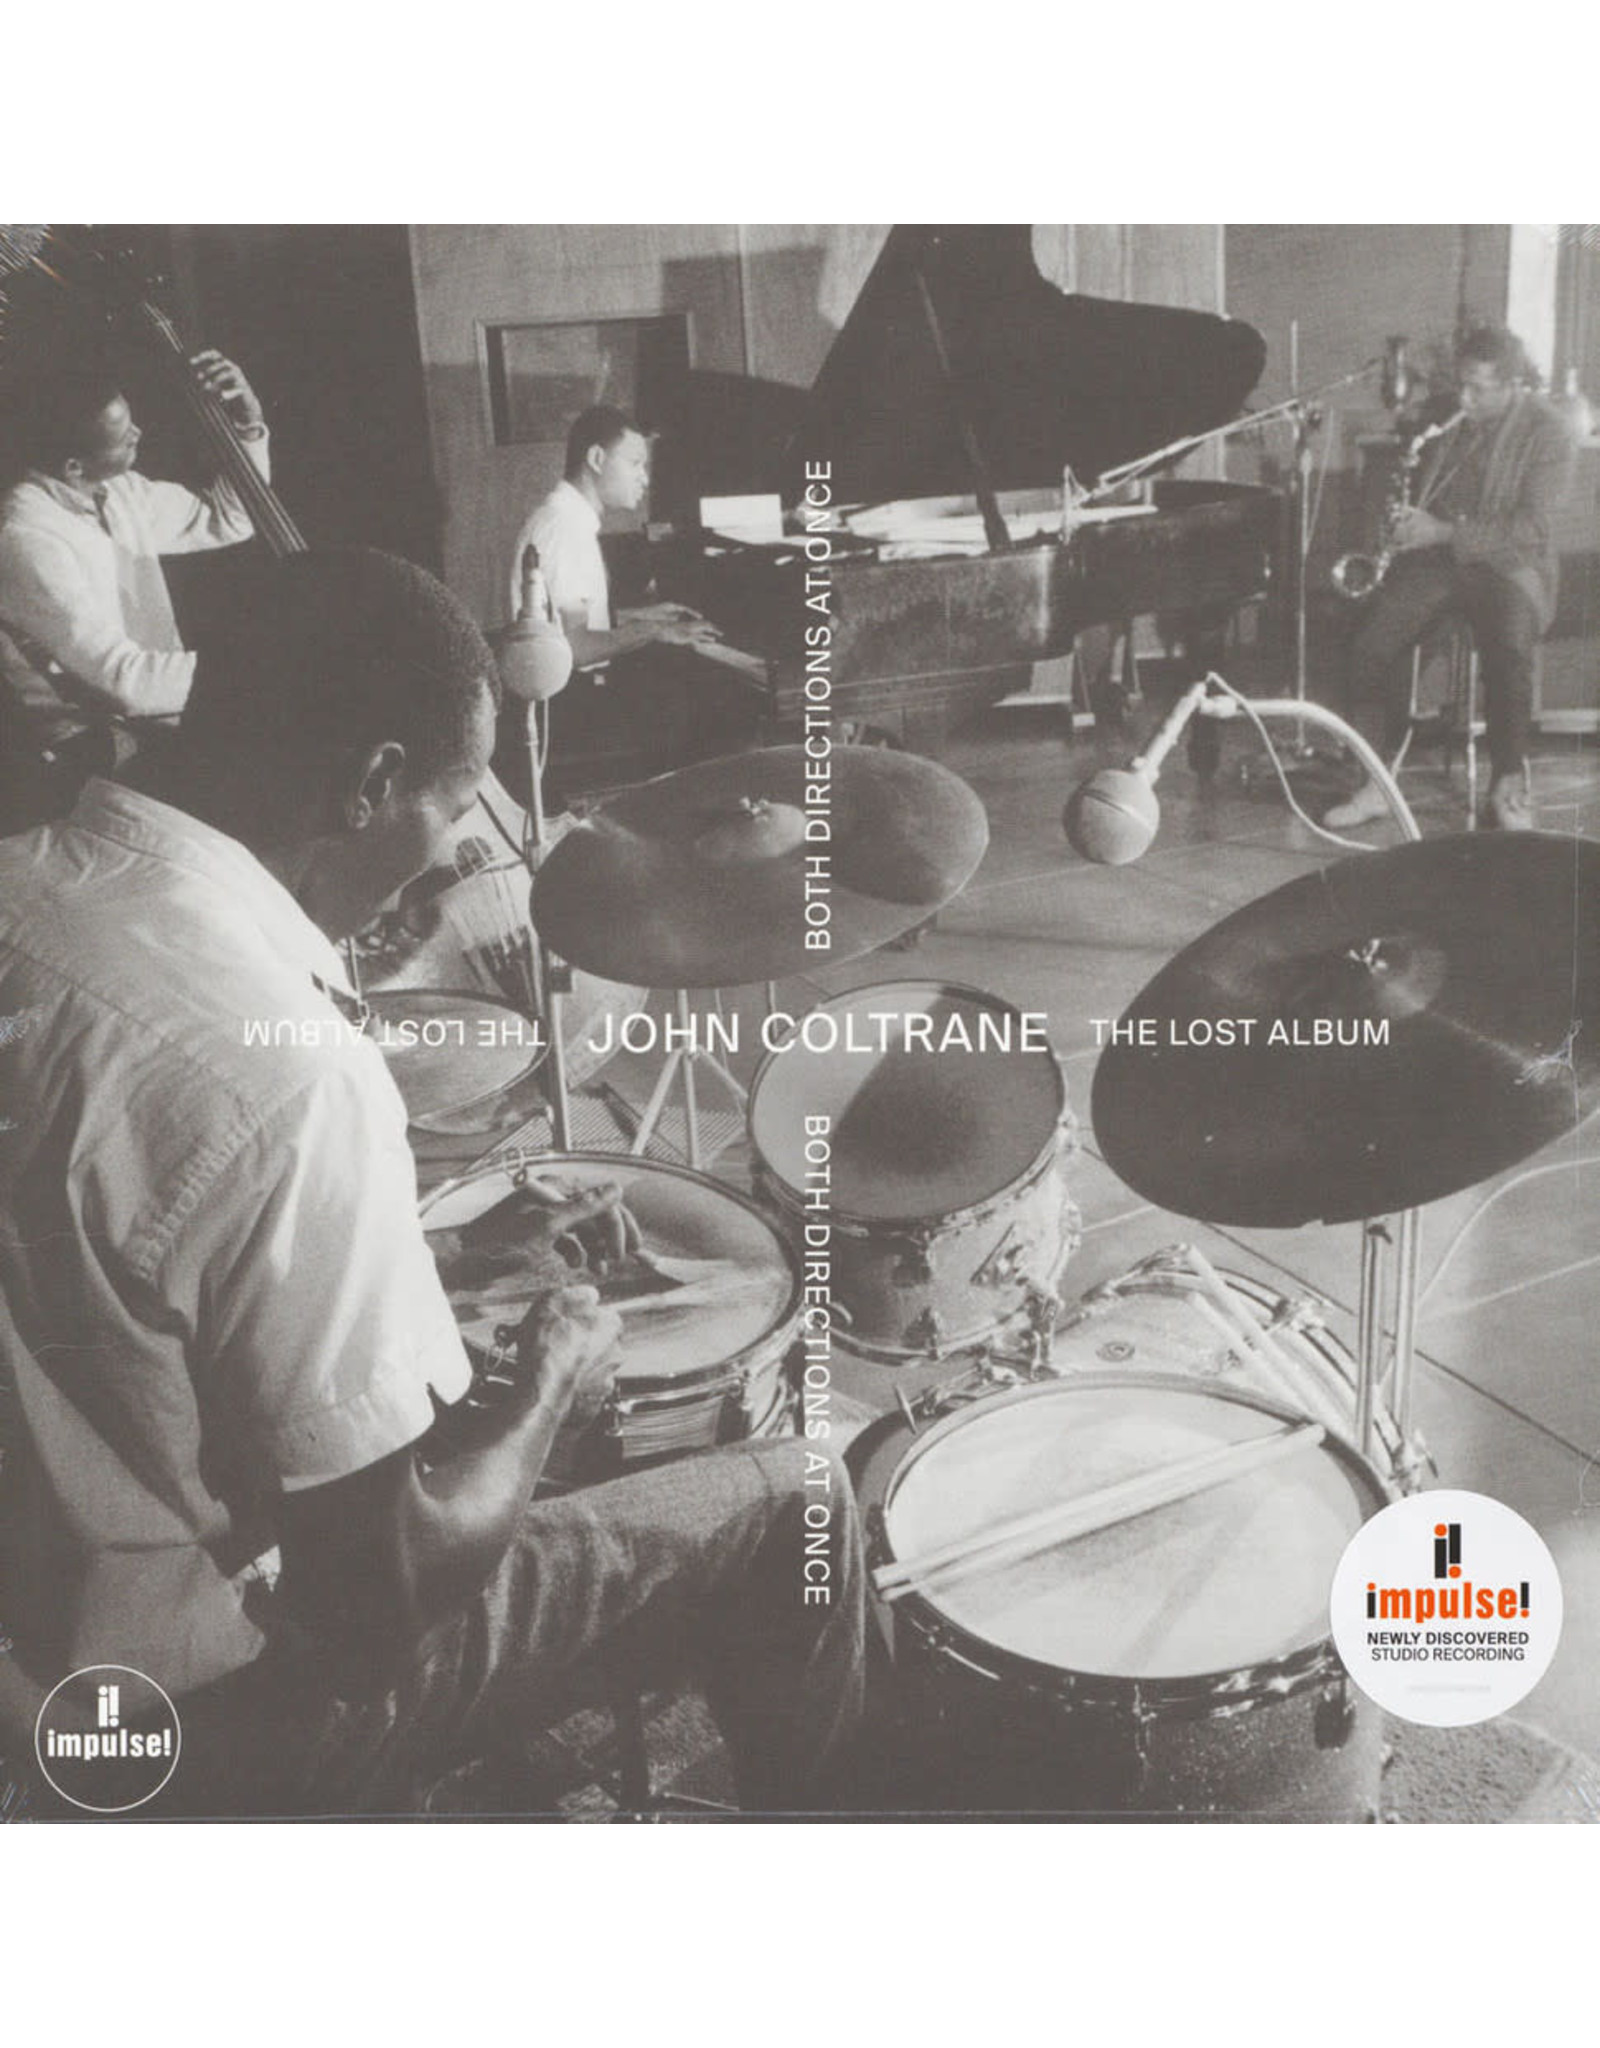 John Coltrane - Both Directions At Once (Lost Album)